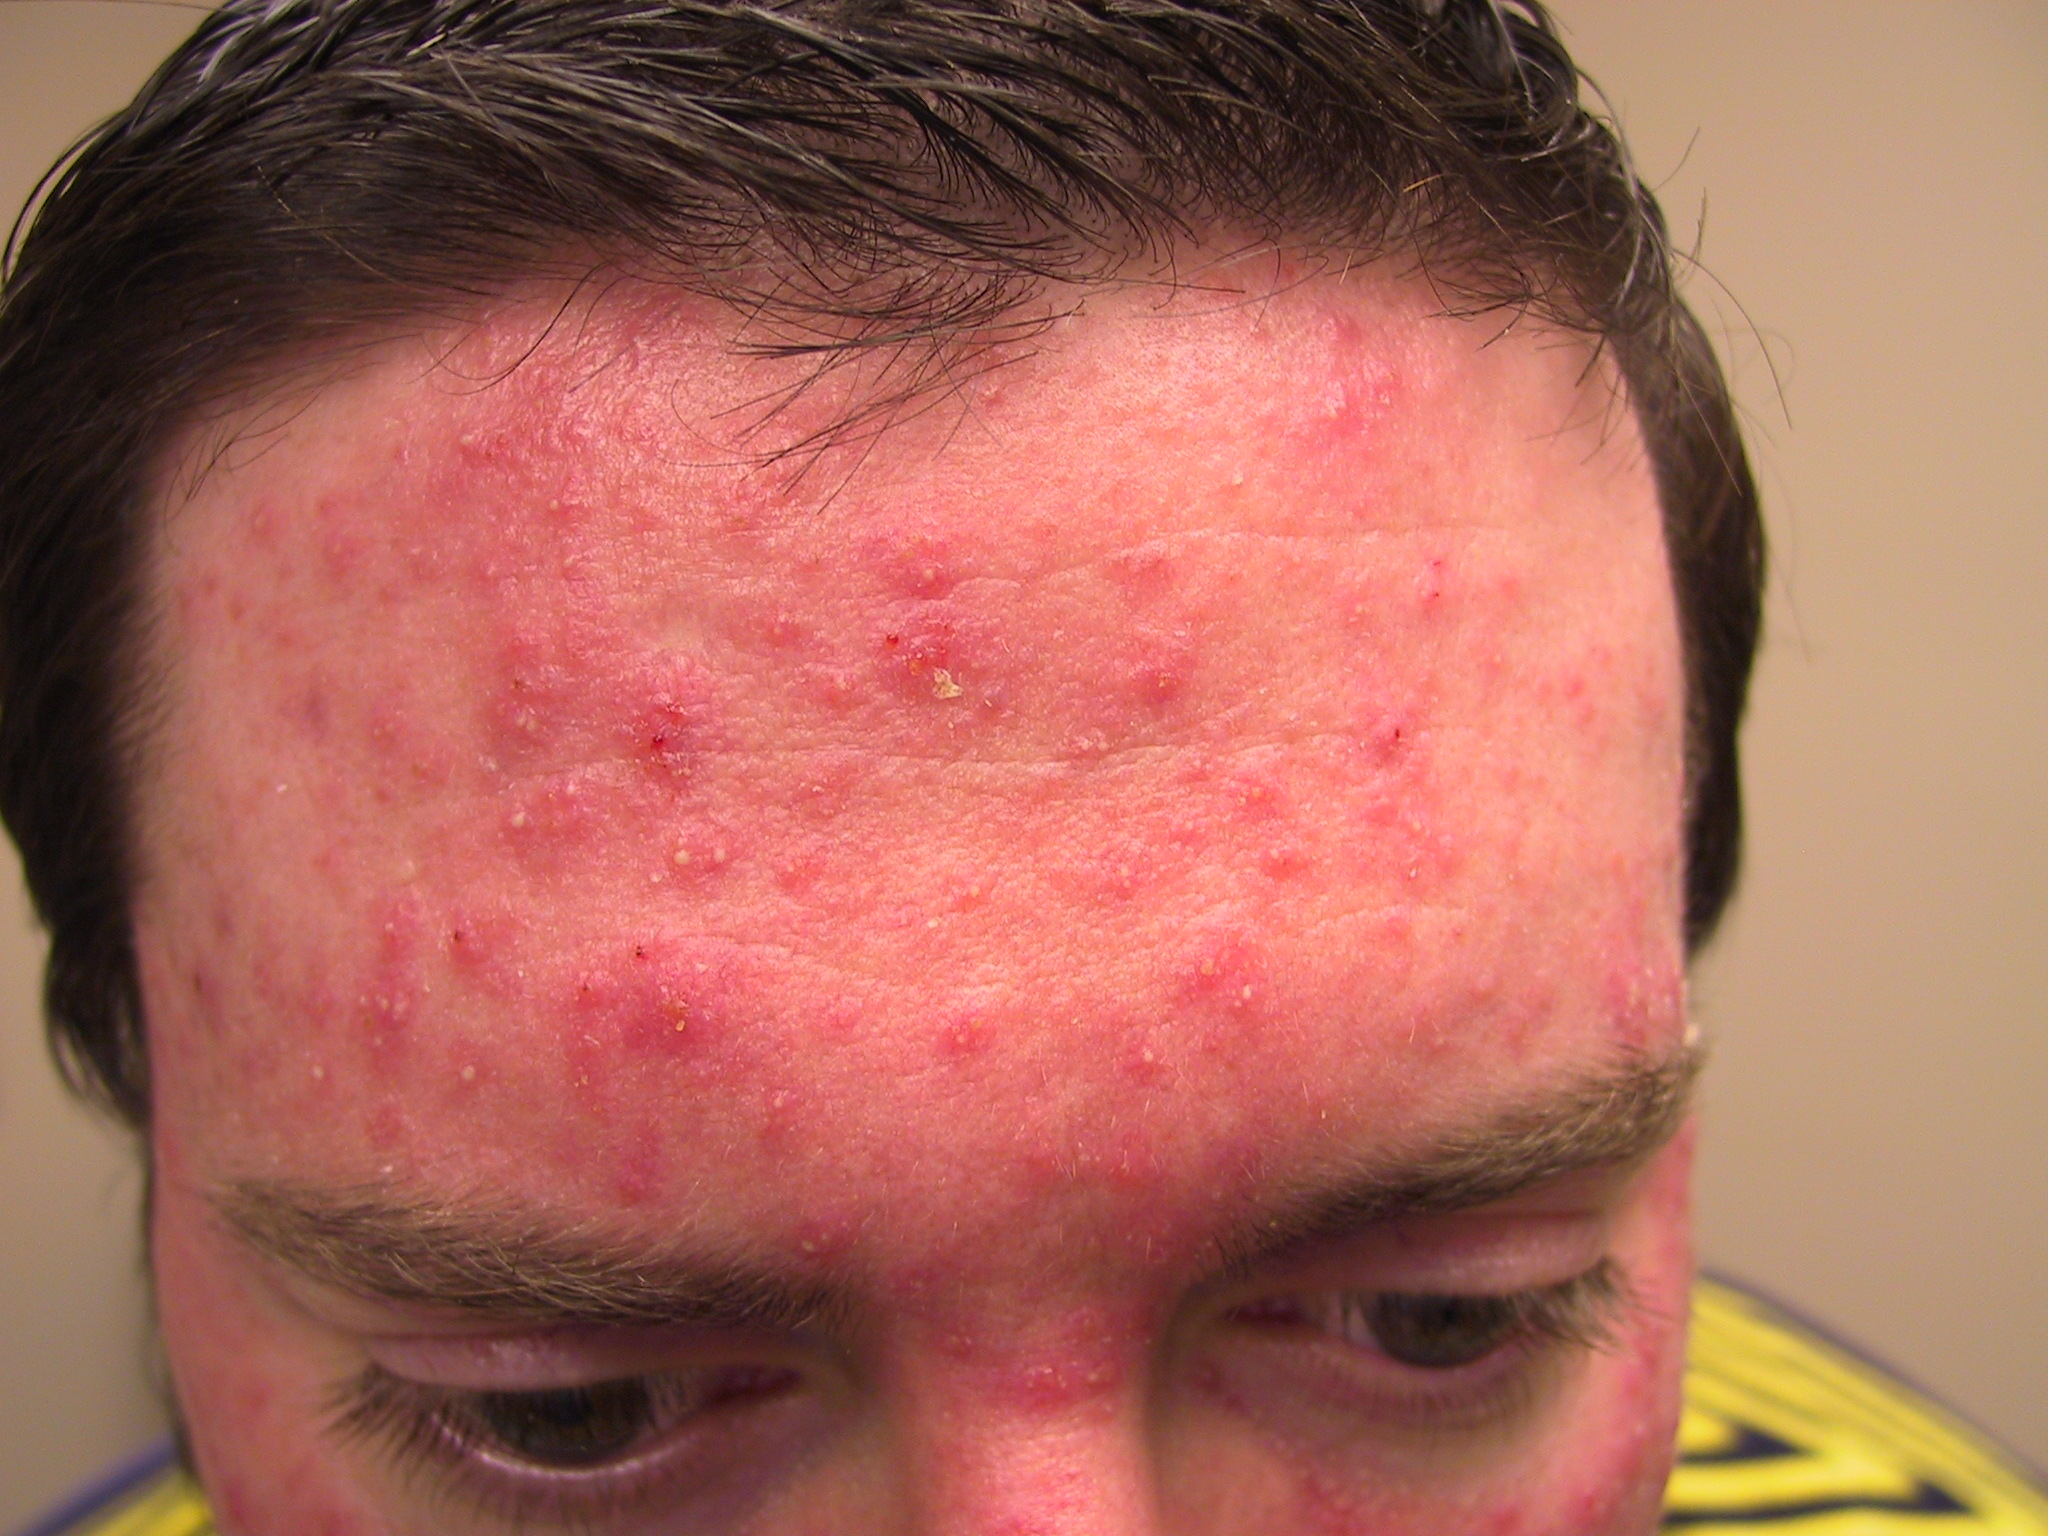 steroid induced rosacea accutane effect